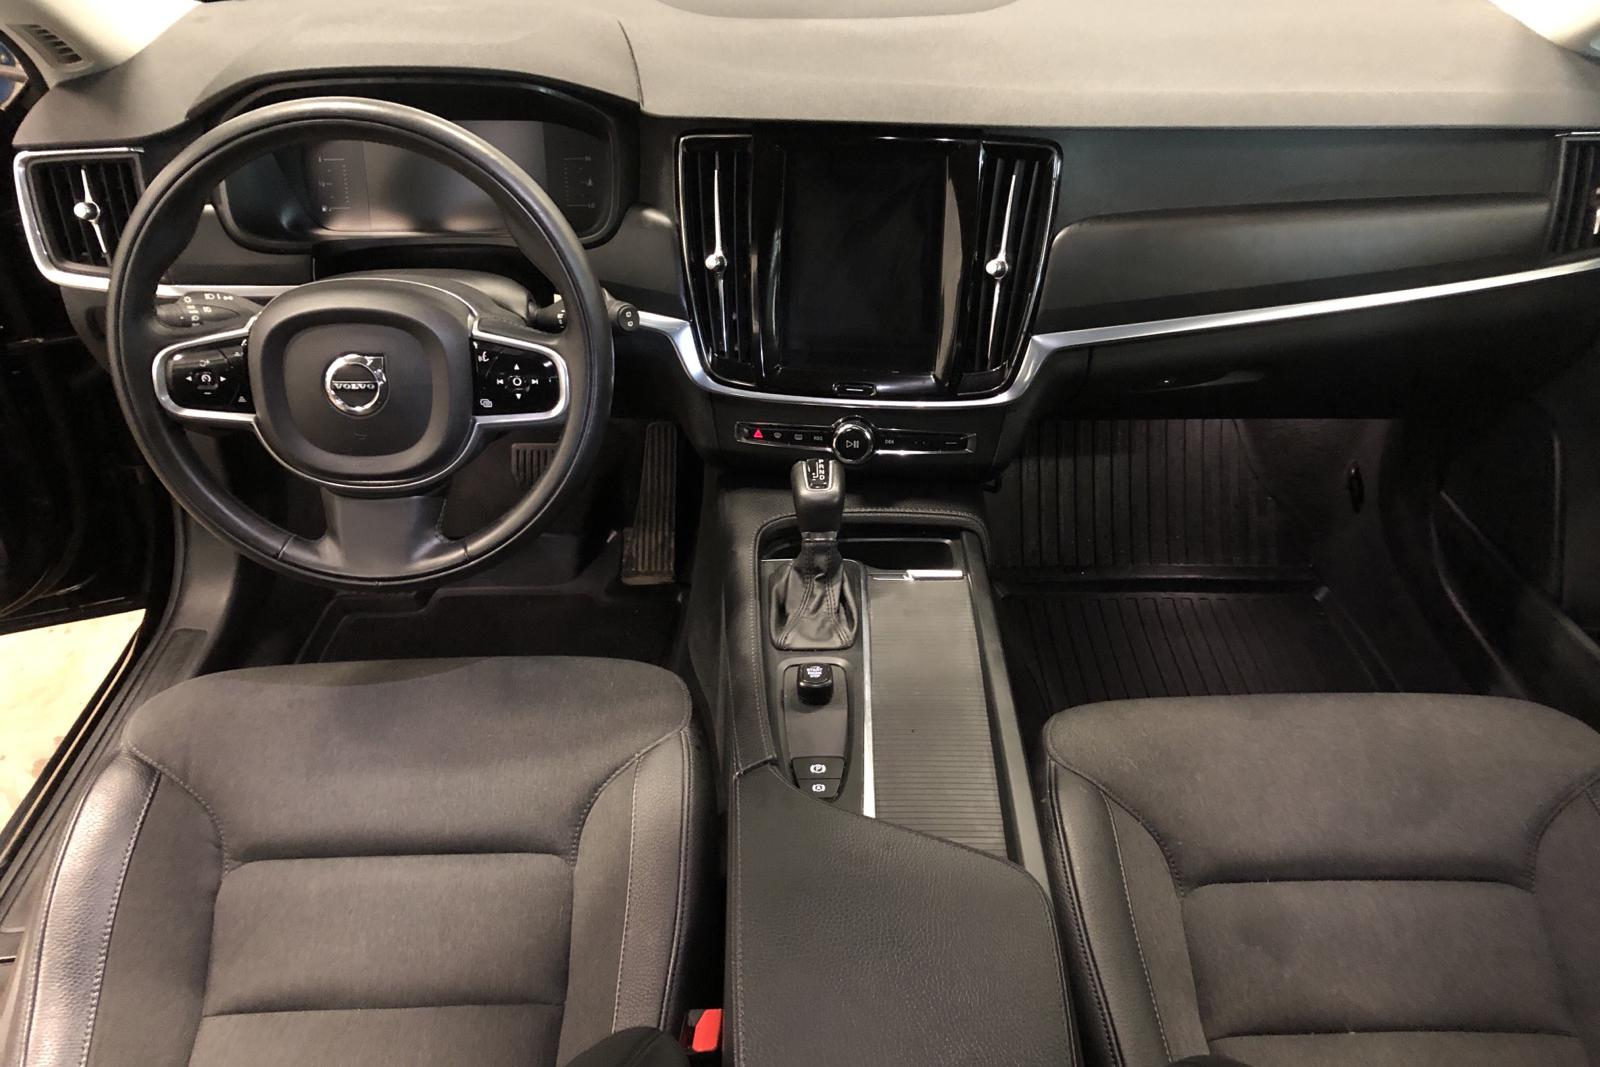 Volvo V90 D4 Cross Country AWD (190hk) - 12 971 mil - Automat - svart - 2018